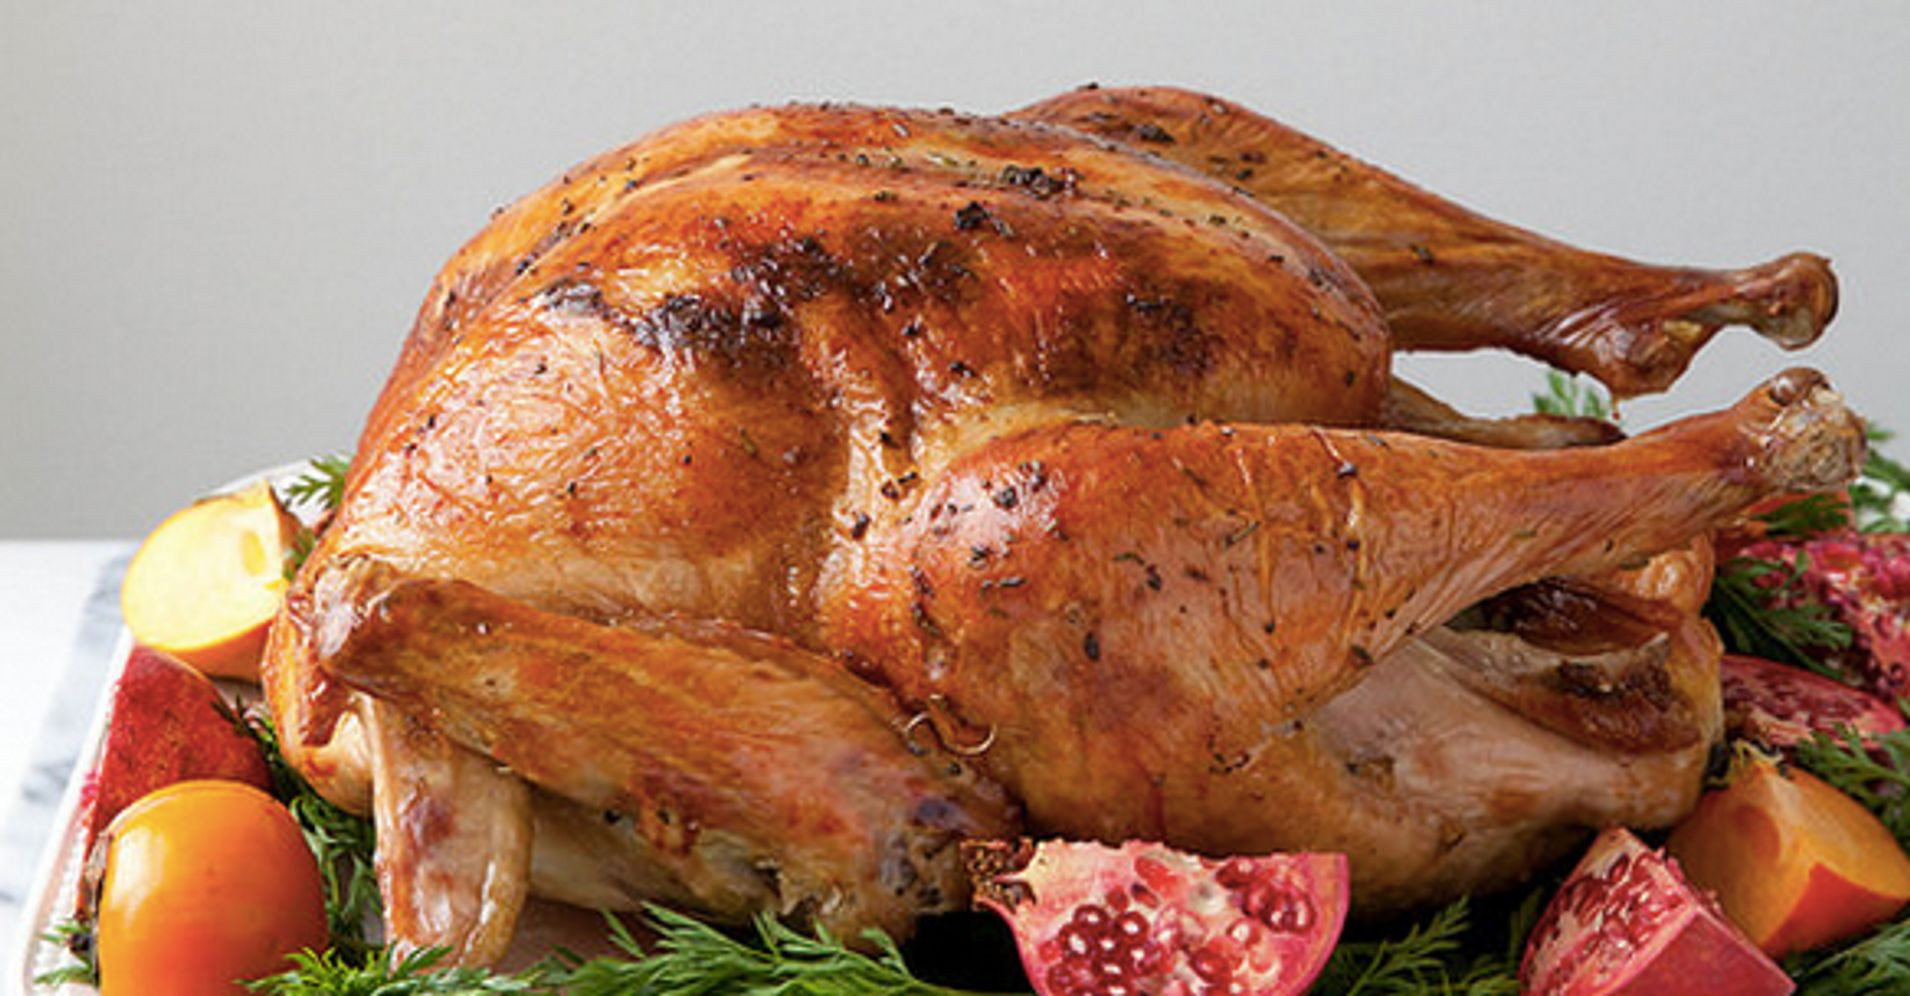 Best Turkey Brands To Buy For Thanksgiving  The Best Turkey Recipes For Thanksgiving